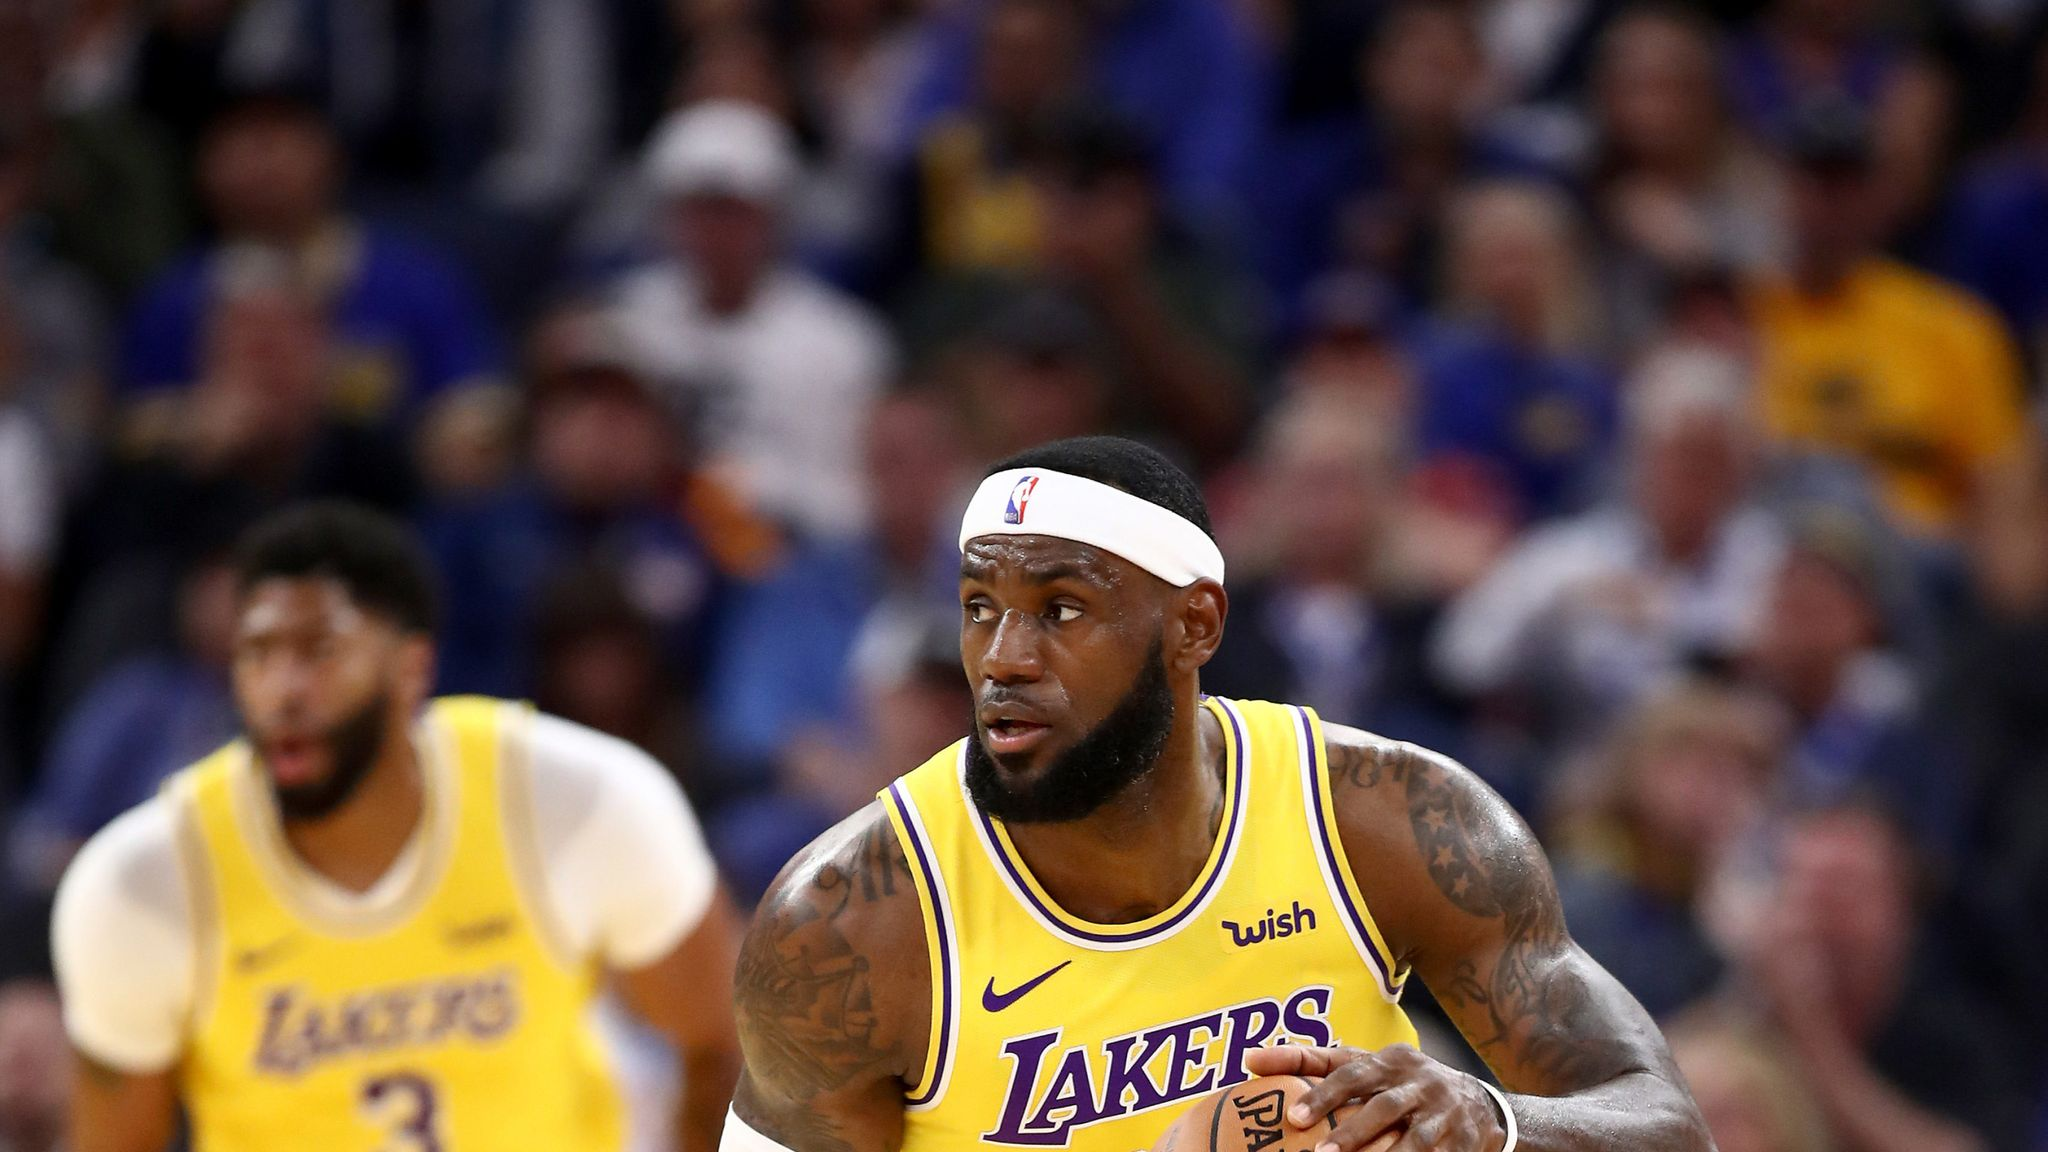 Speaking After The Los Angeles Lakers Preseason Win Over Golden State Lebron James Said His Chemistry With Anthony Davis Has Been Very Good